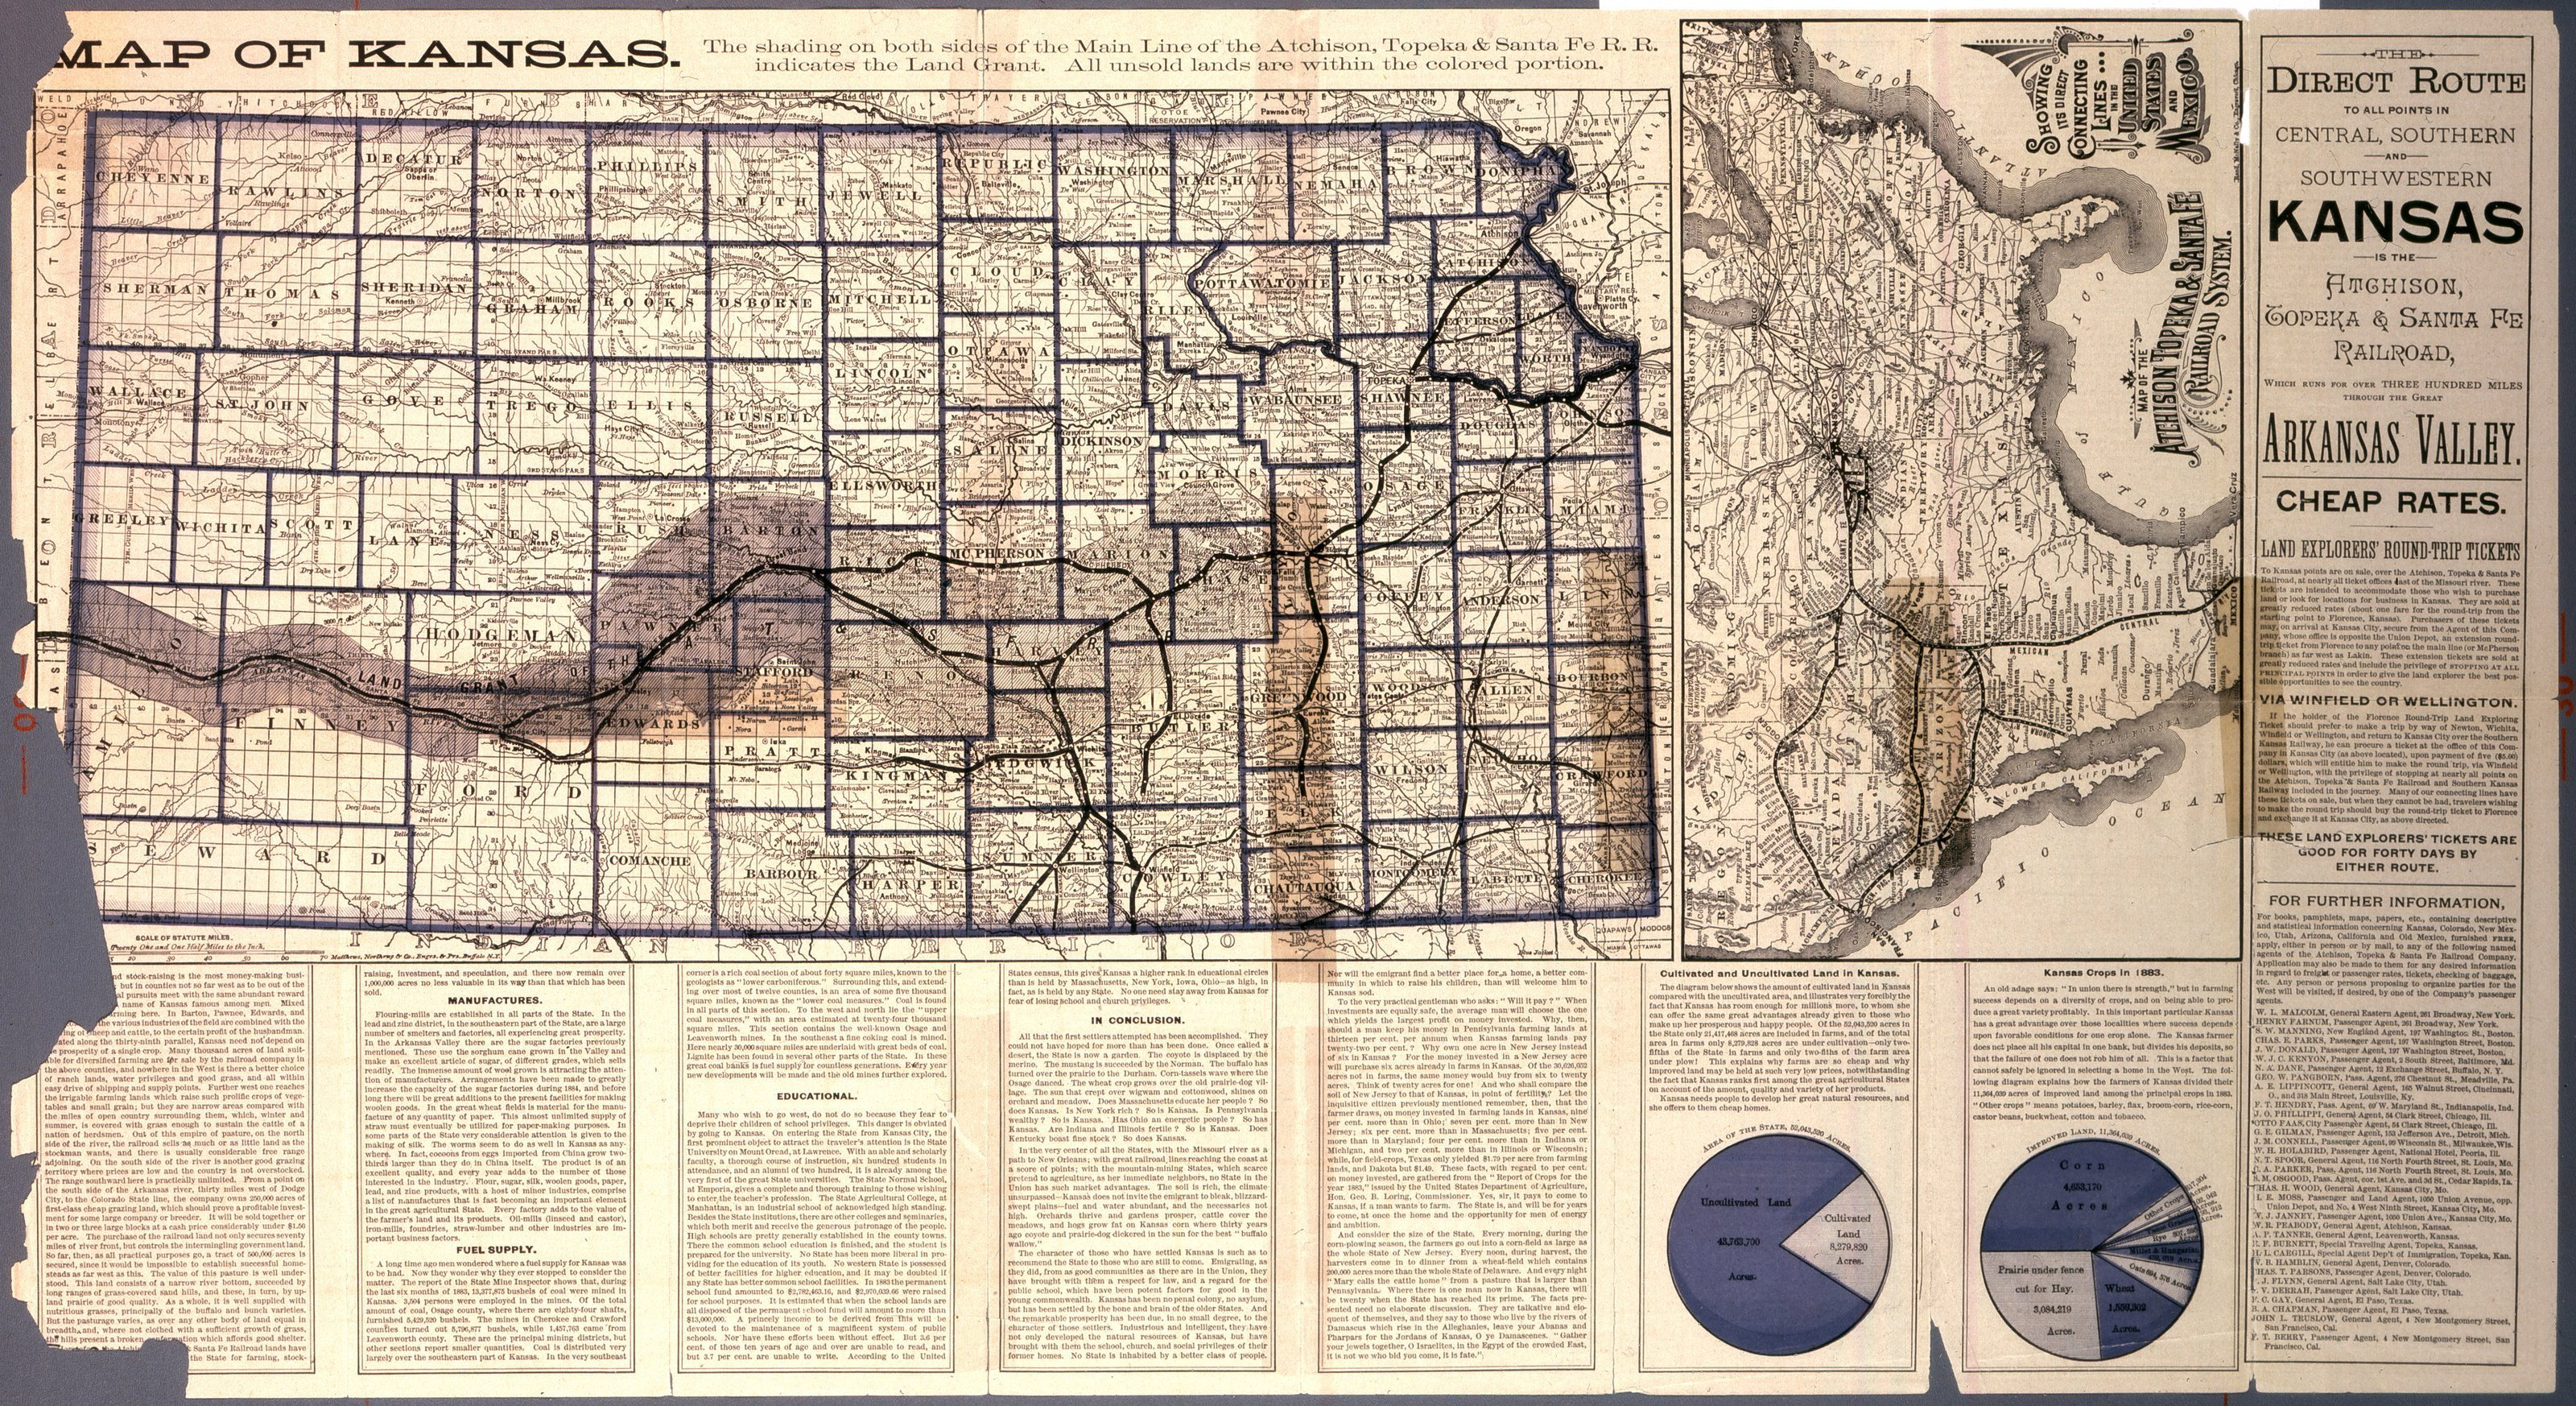 Map of Kansas. The direct route to all points in central, southern and southwestern Kansas is the Atchison, Topeka and Santa Fe Railroad - 1